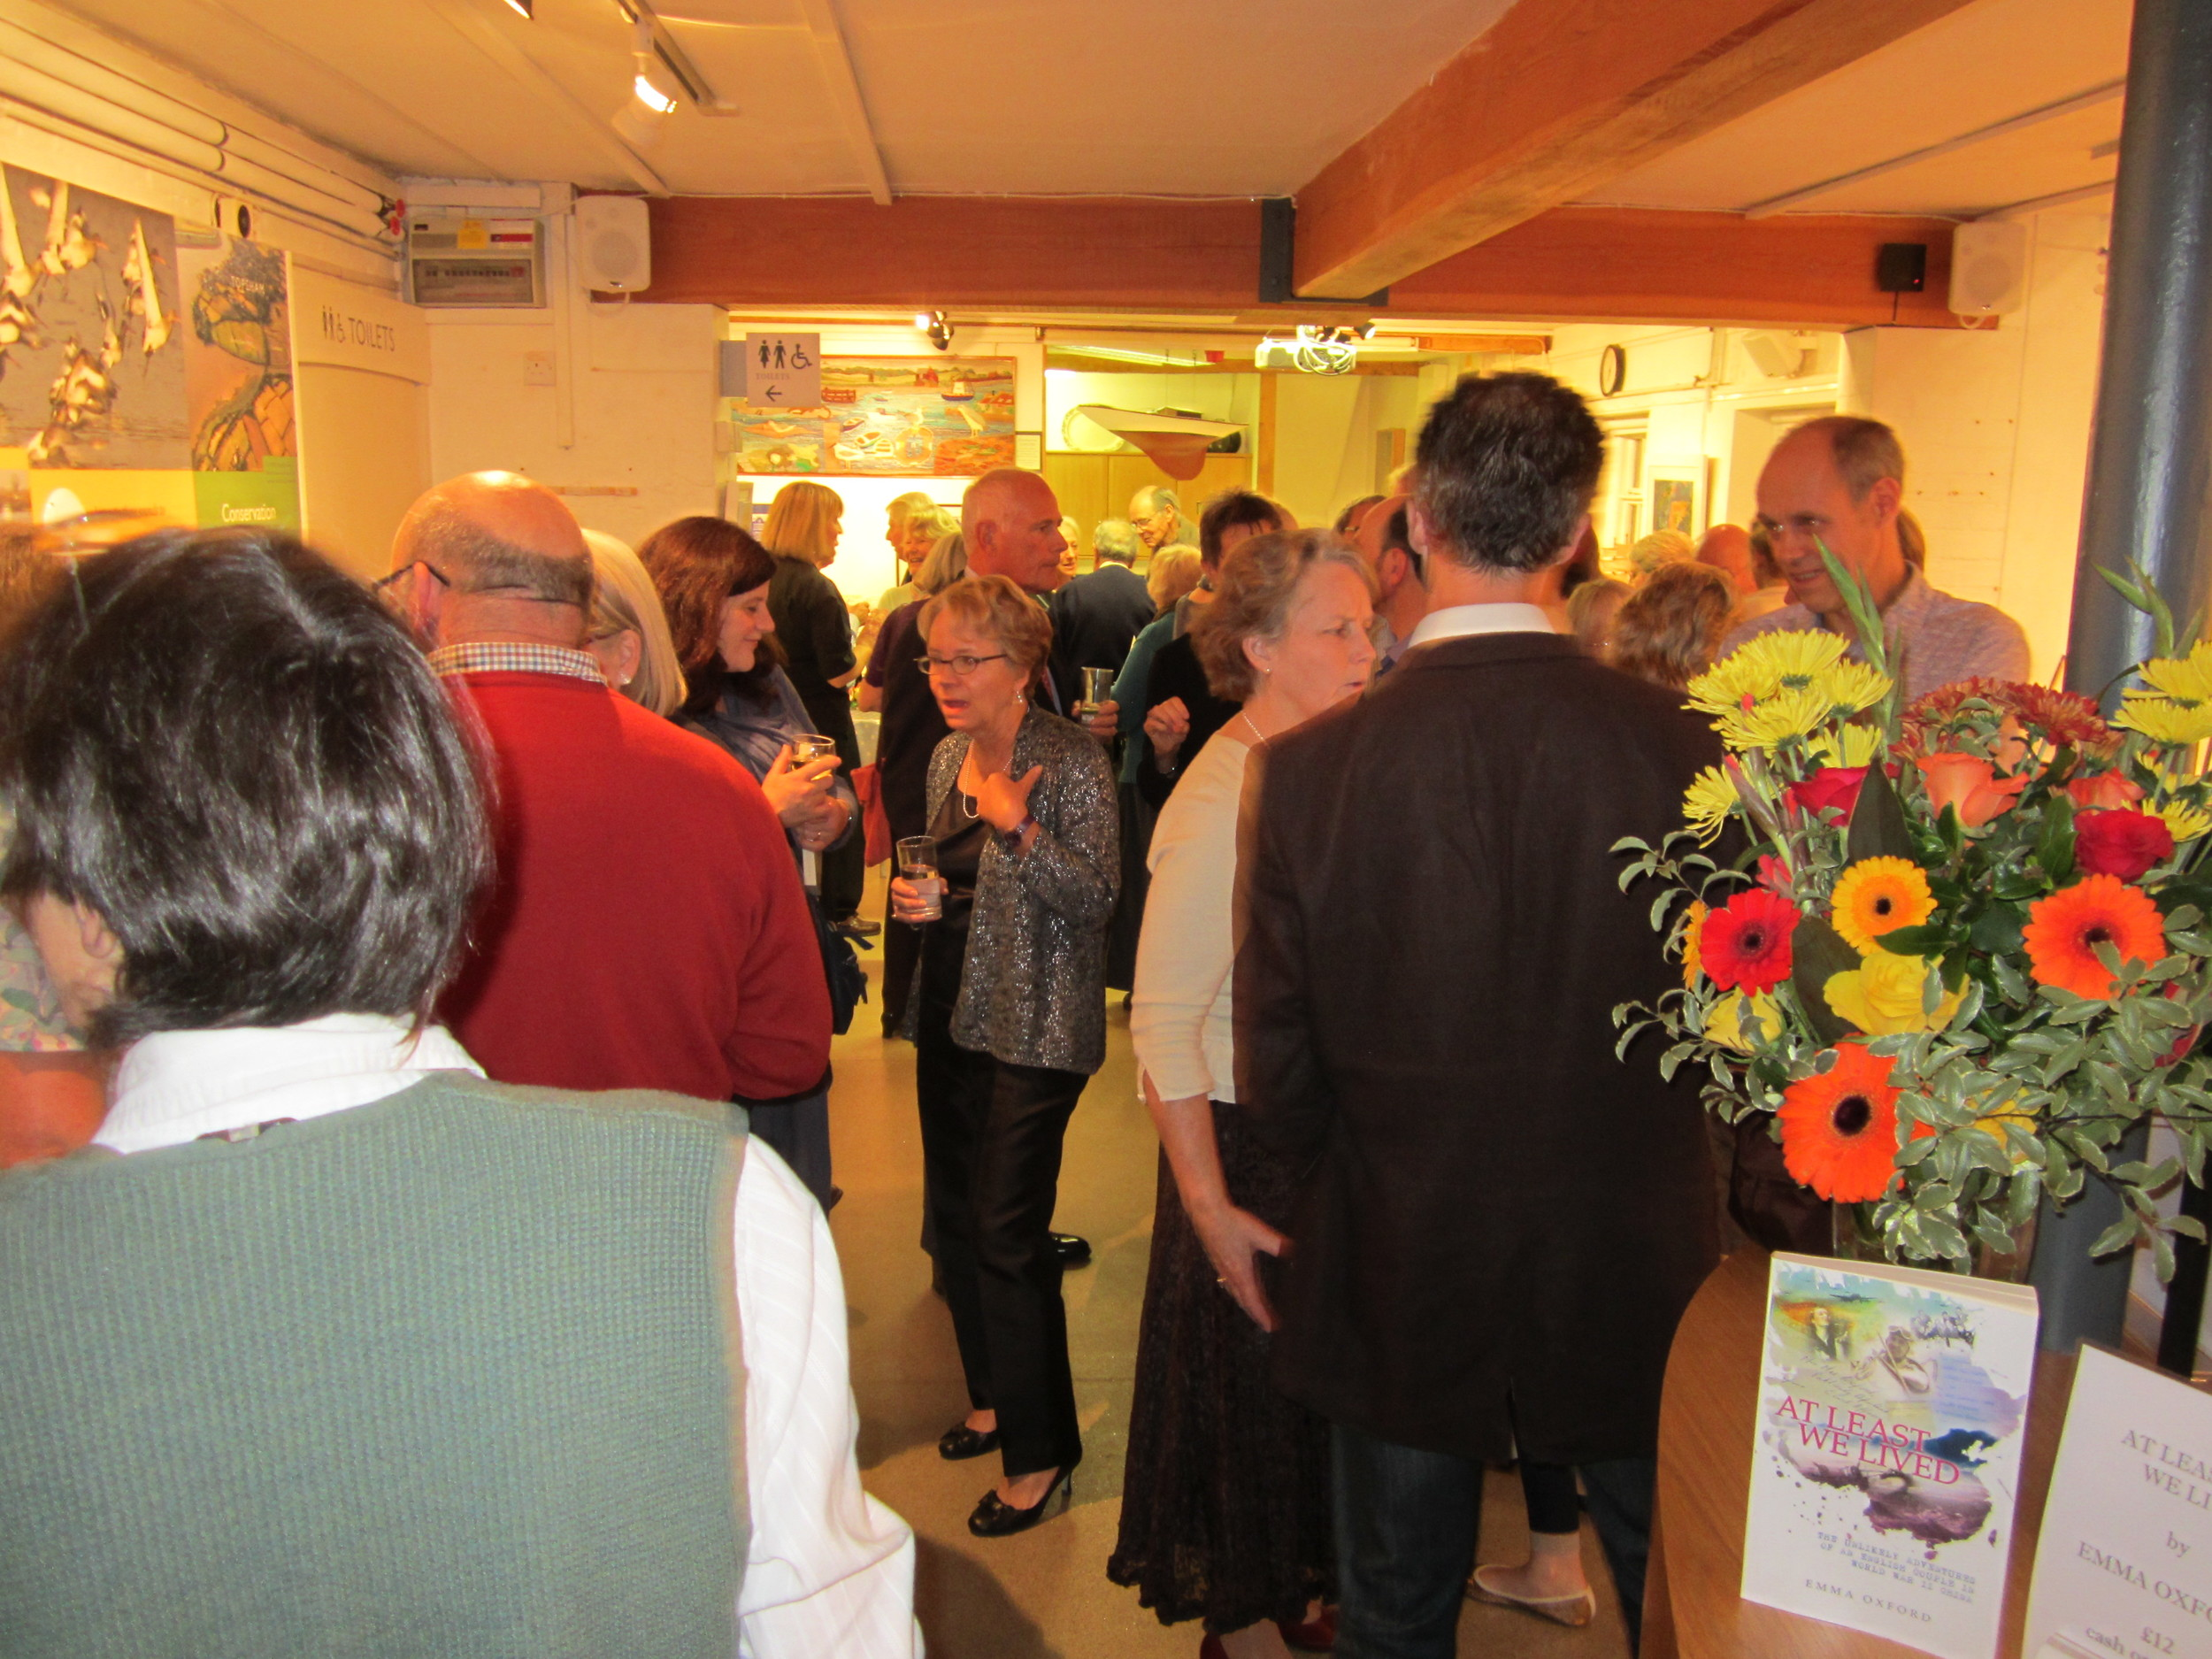 Many guests remember Max and Audrey fondly from their years on Monmouth St in Topsham.